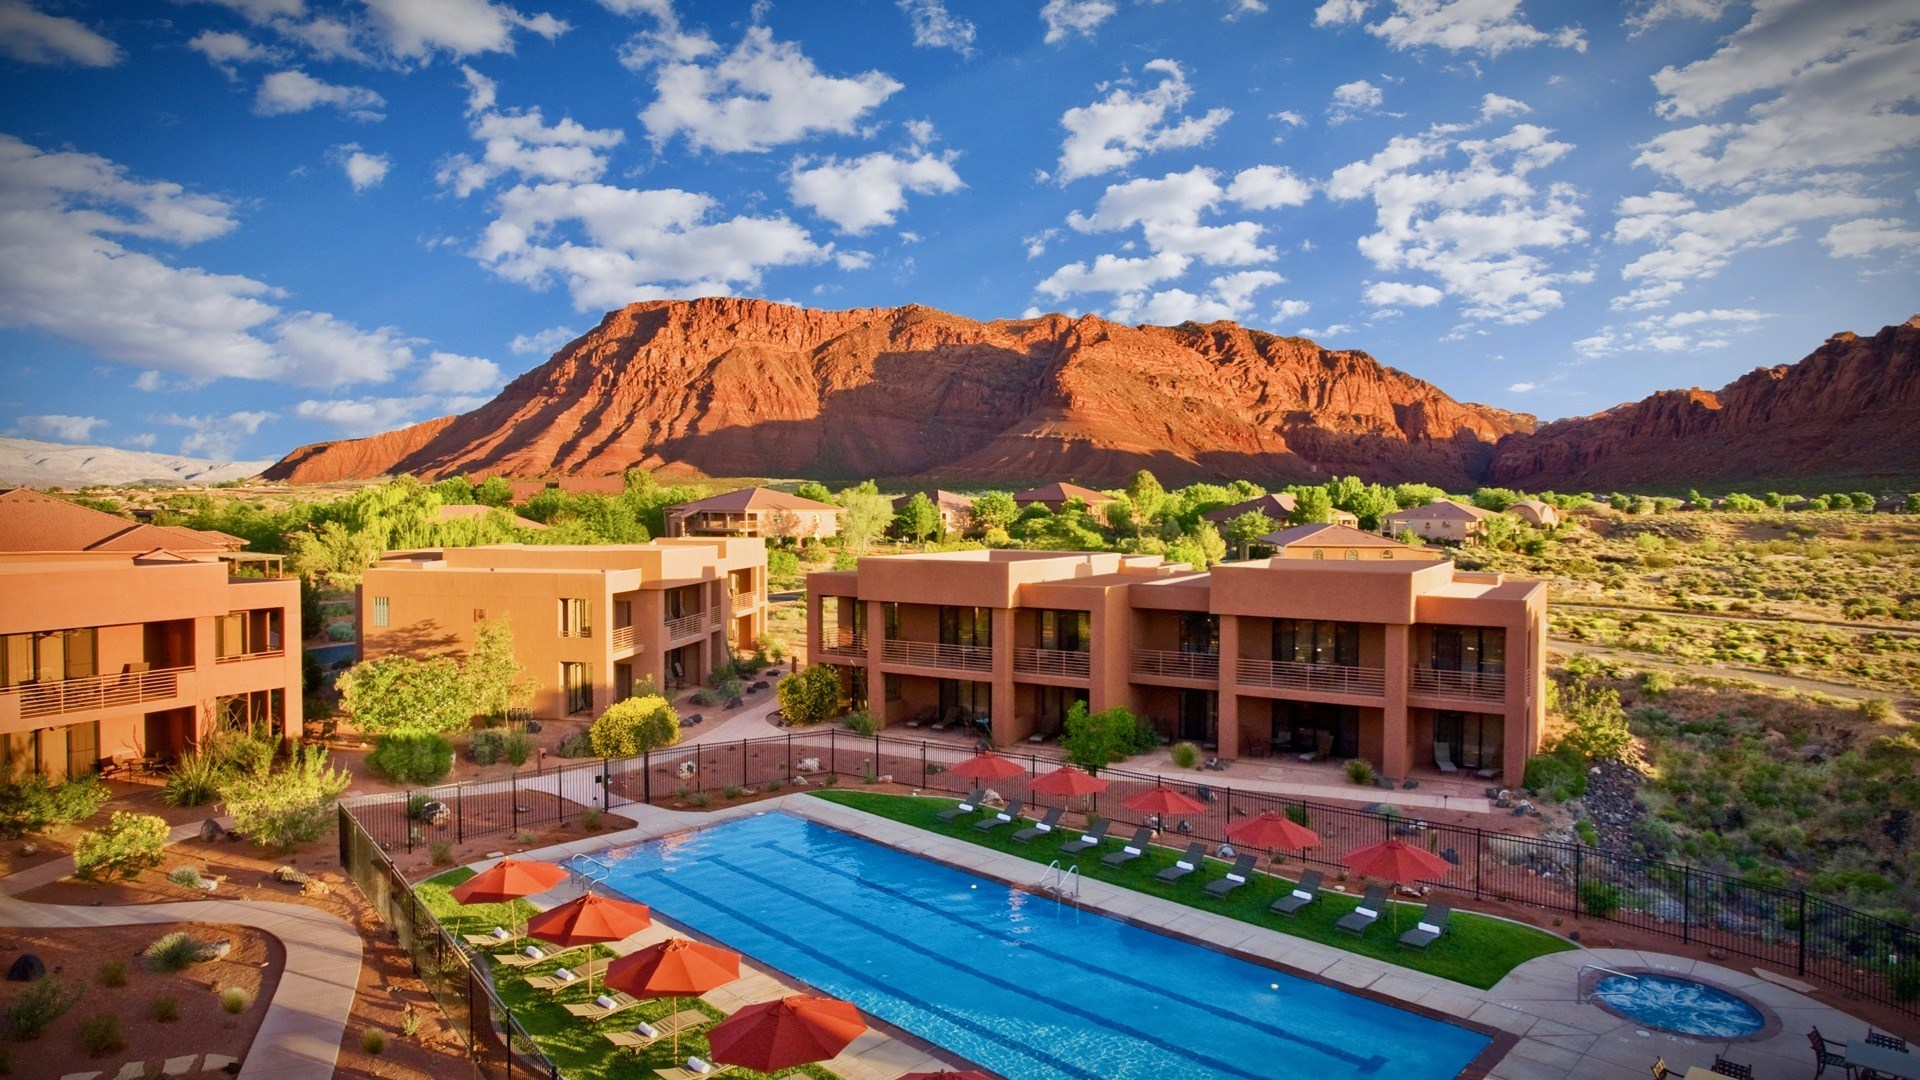 Top 100 Spas of 2020, Red Mountain Resort